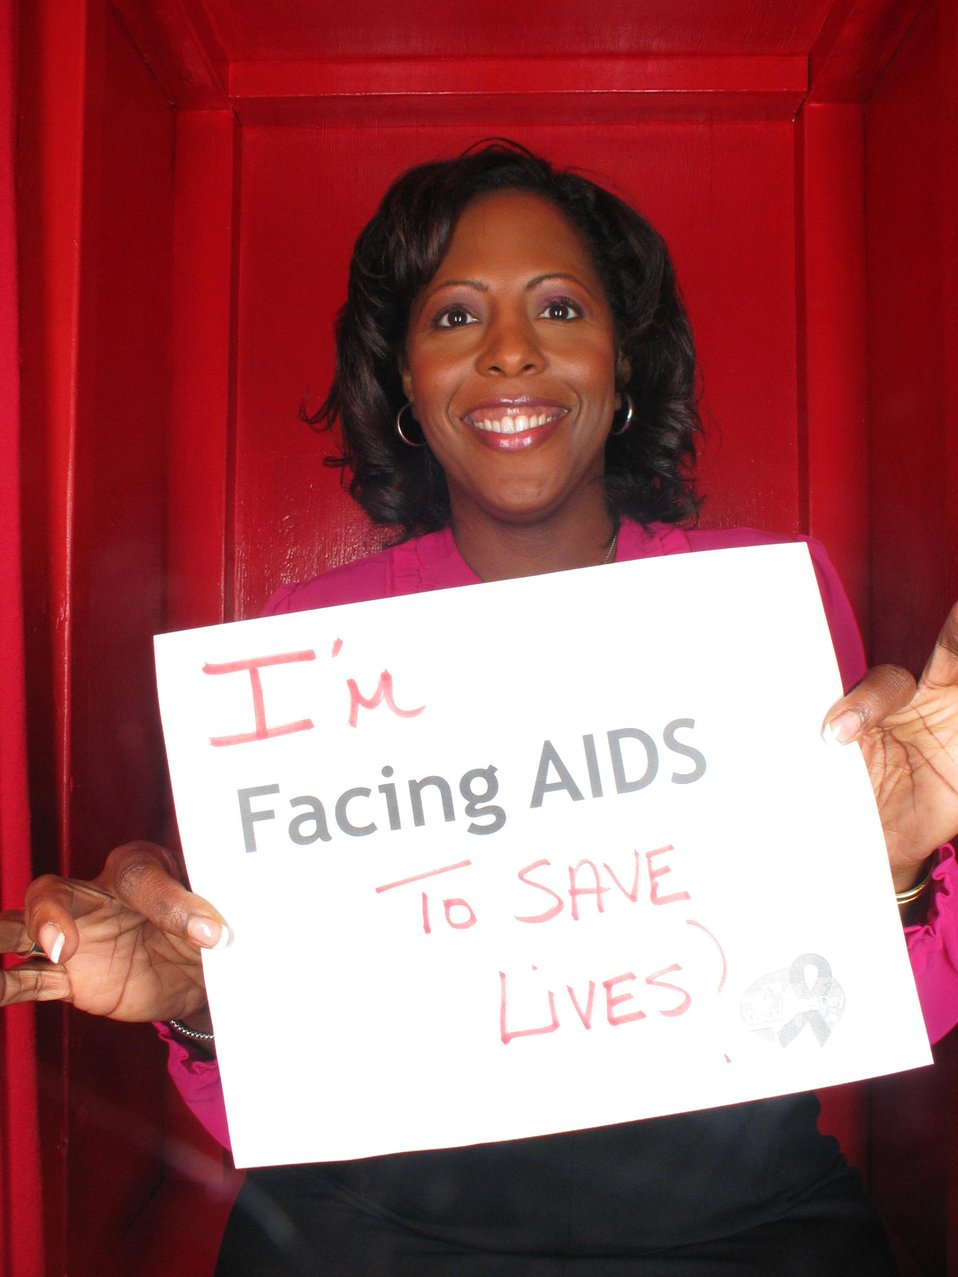 I'm Facing AIDS to save lives.